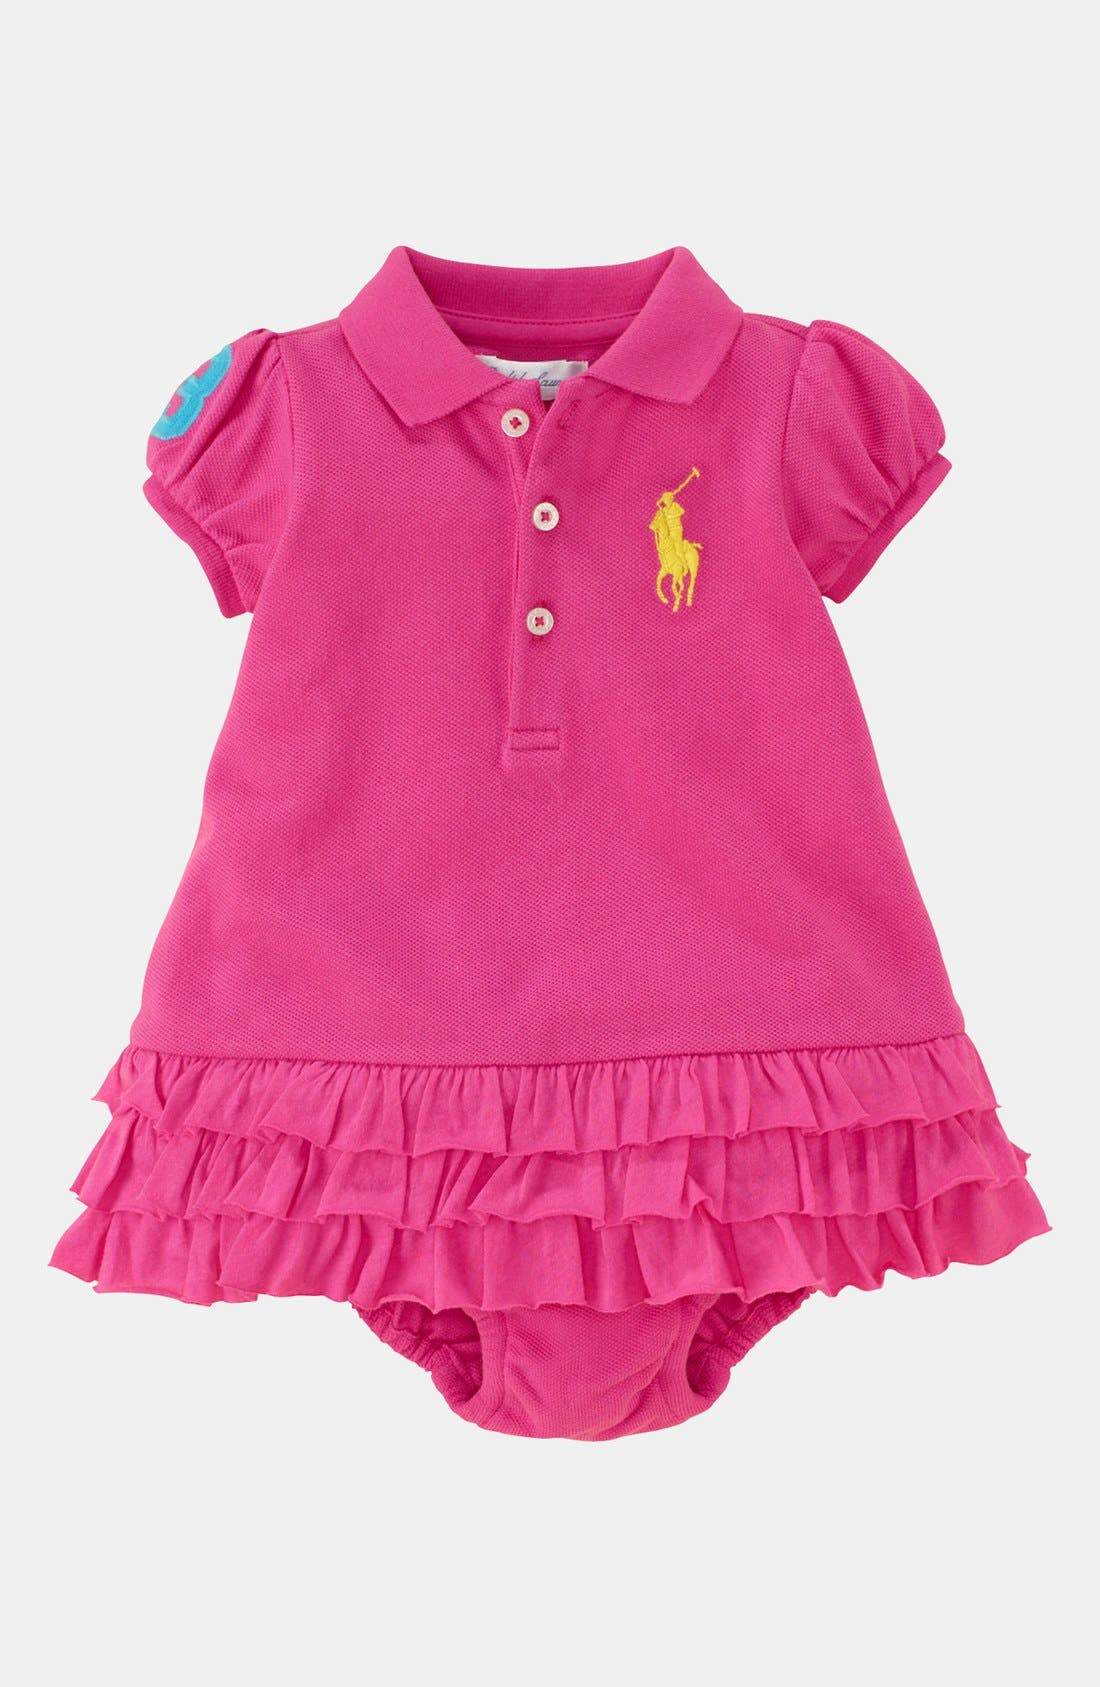 Alternate Image 1 Selected - Ralph Lauren Polo Dress & Bloomers (Baby)